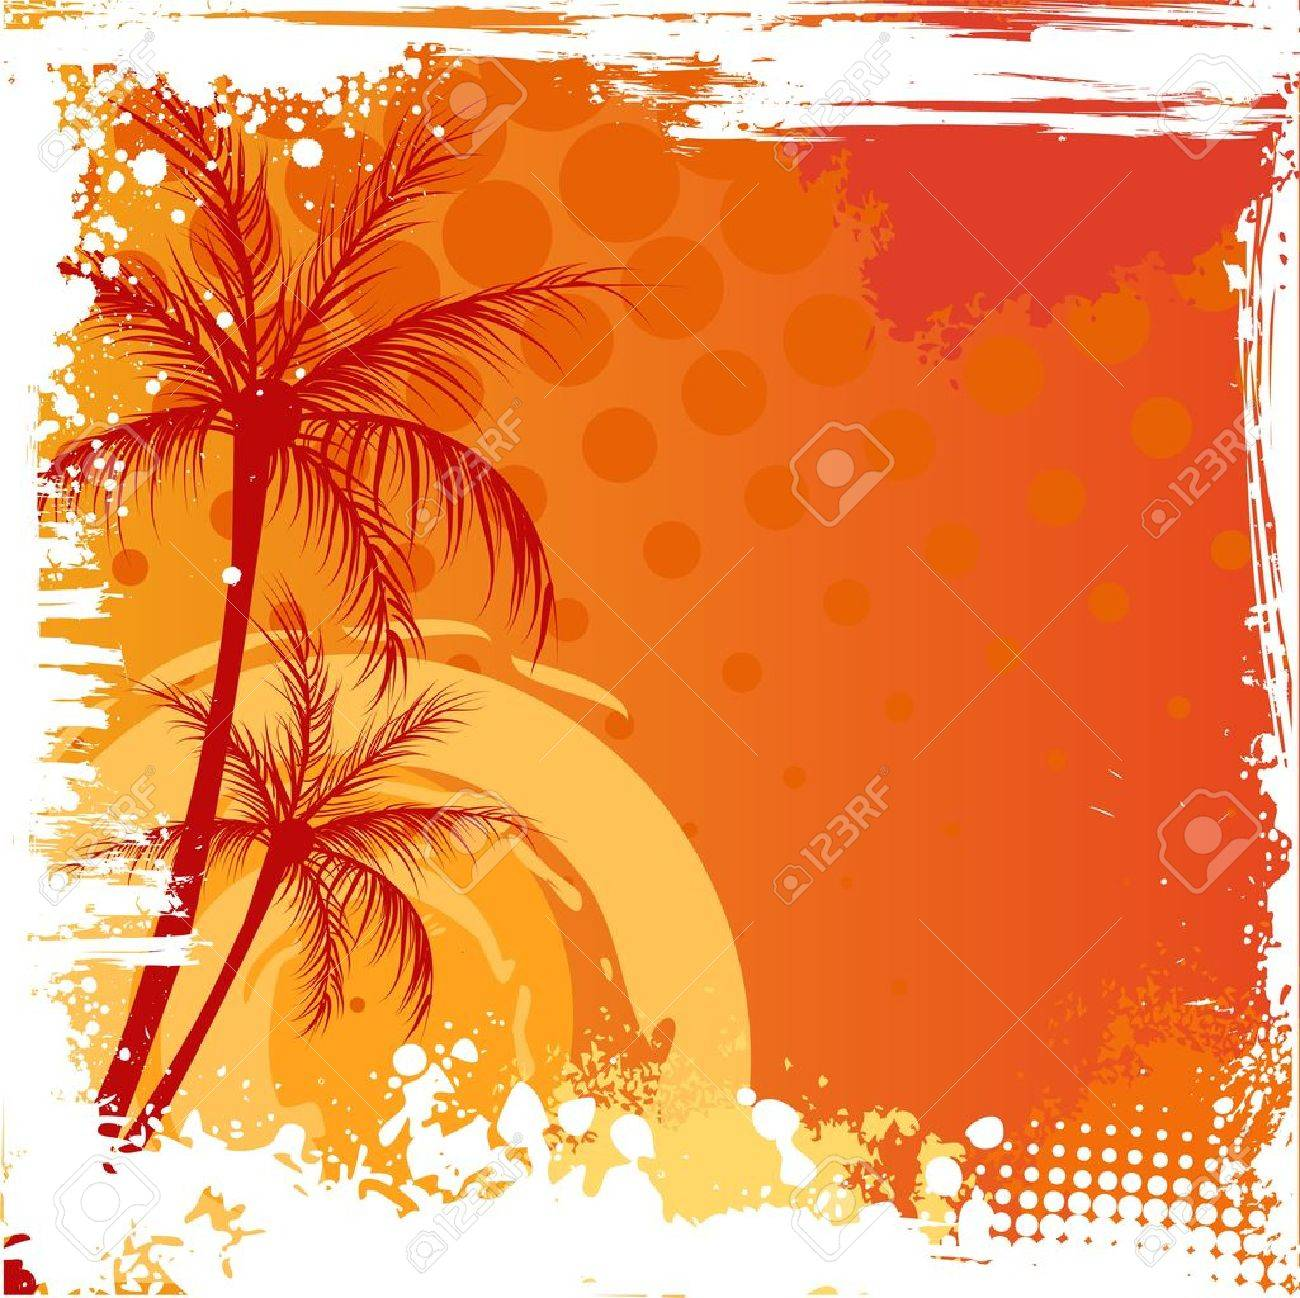 Palm trees on orange sunset background with grunge corners Stock Vector - 20338139